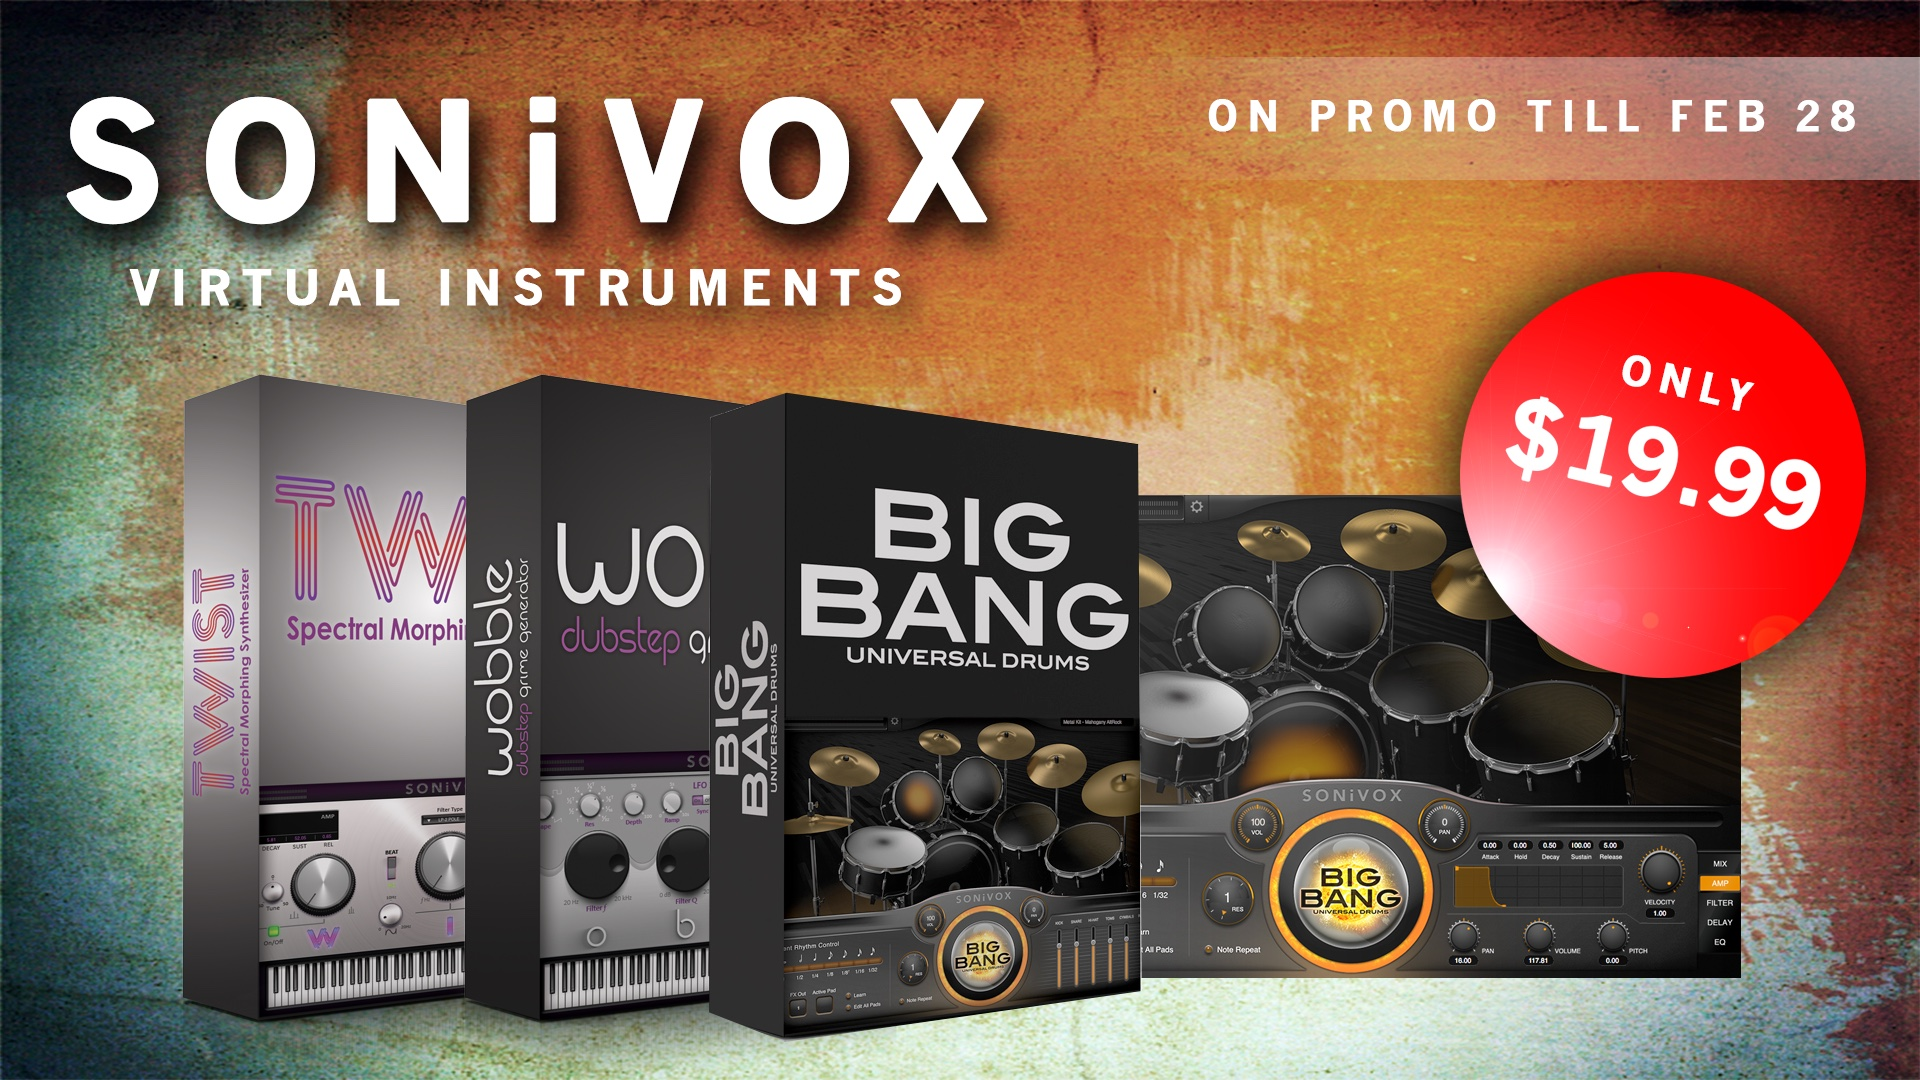 Sonivox Twist, Wobble, Big bang Universal Drums Promo